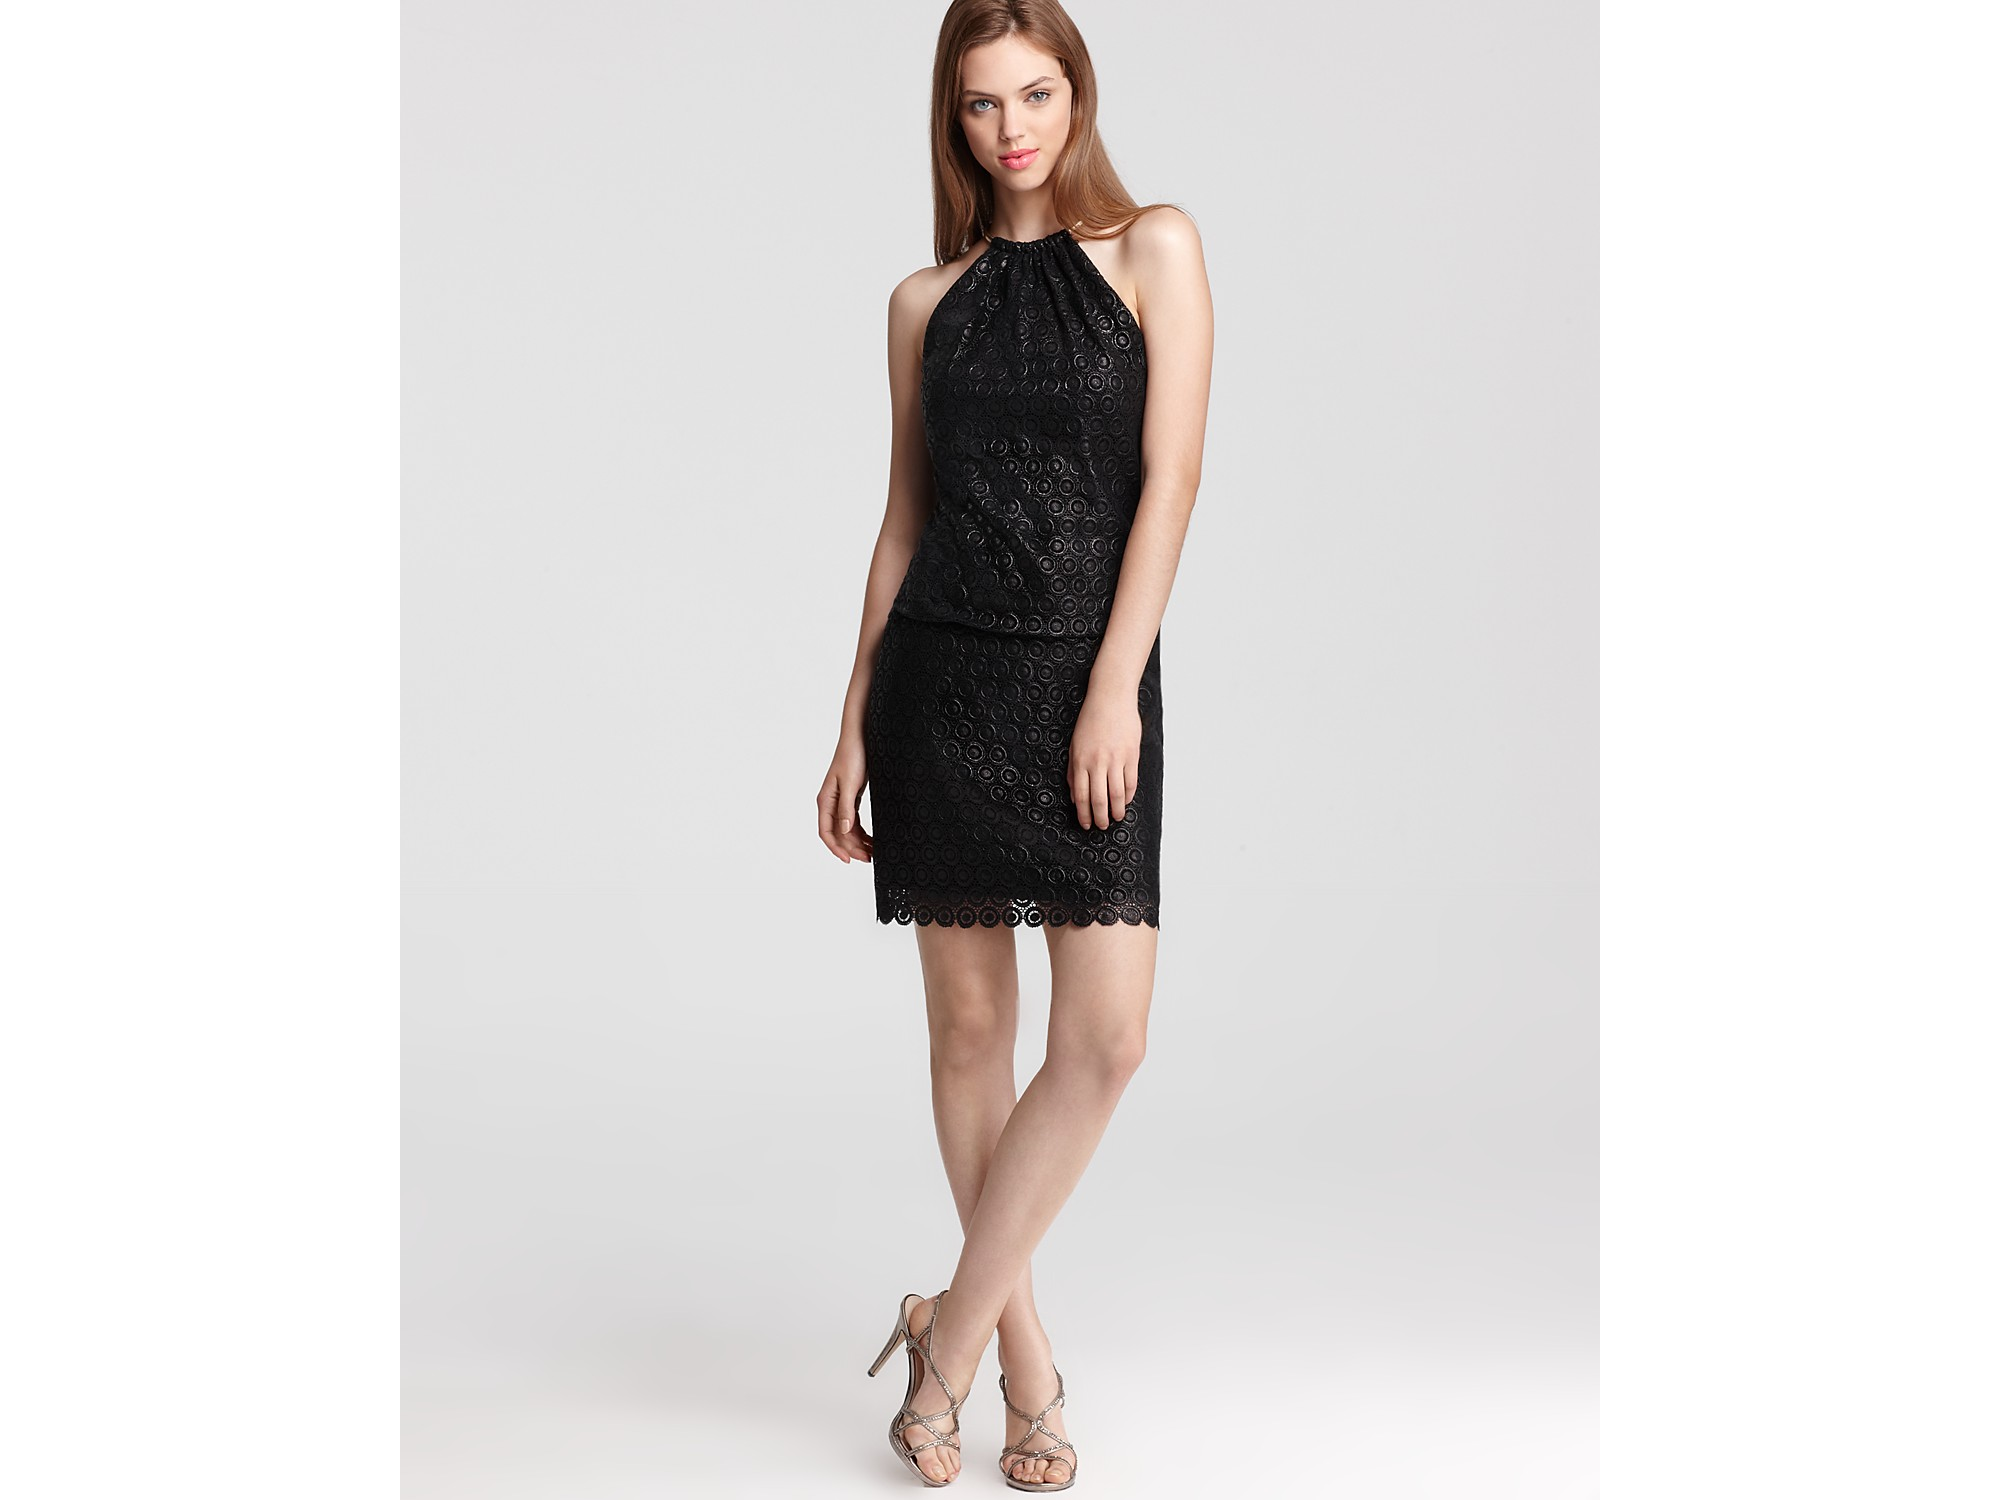 Laundry by Shelli Segal Lace Dress